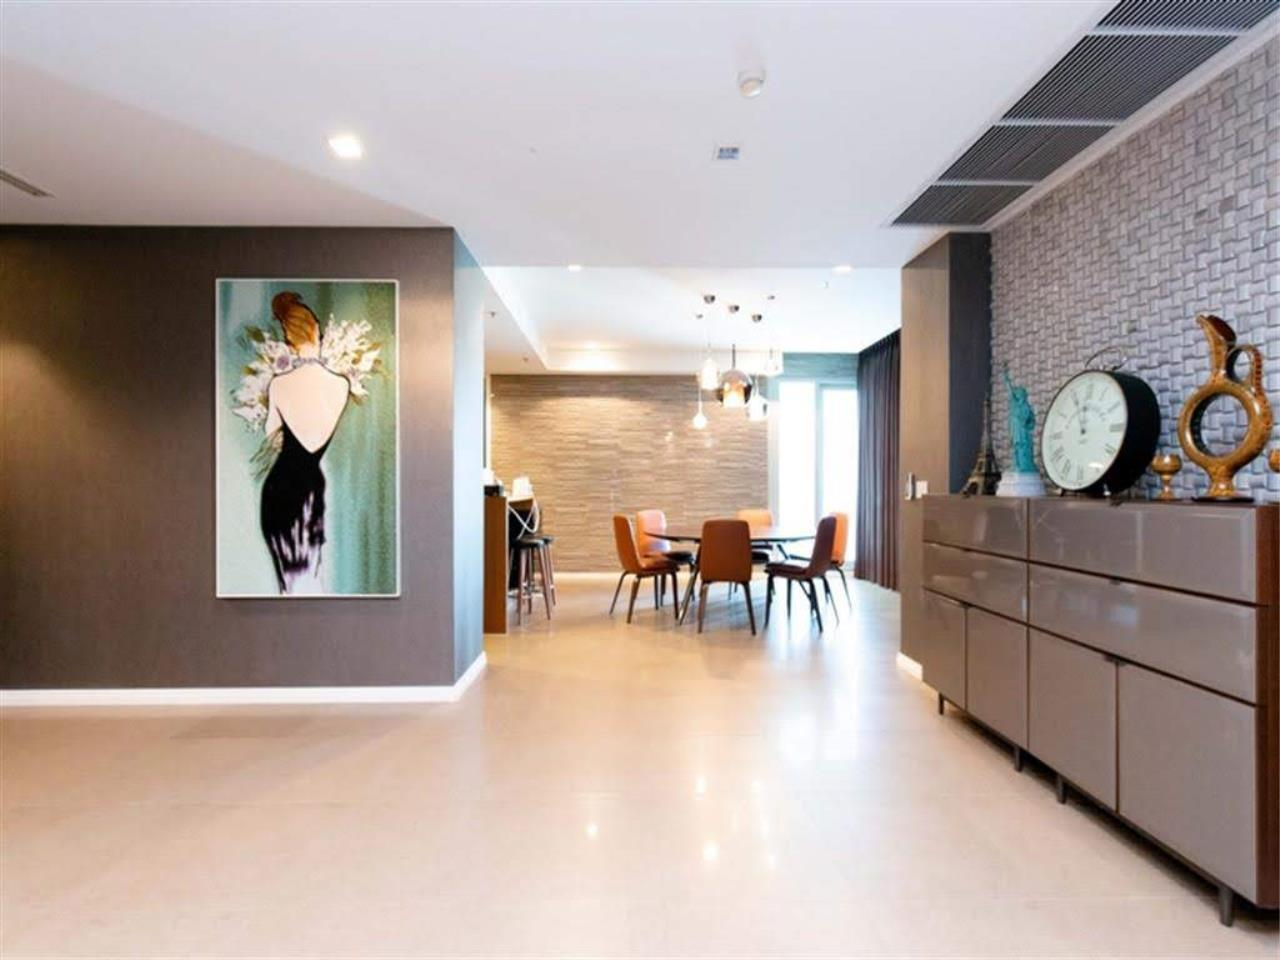 Bestbkkcondos Agency's The River - 233,8 sqm - For Sale : 52 000 000 THB - 3 Bedrooms 19